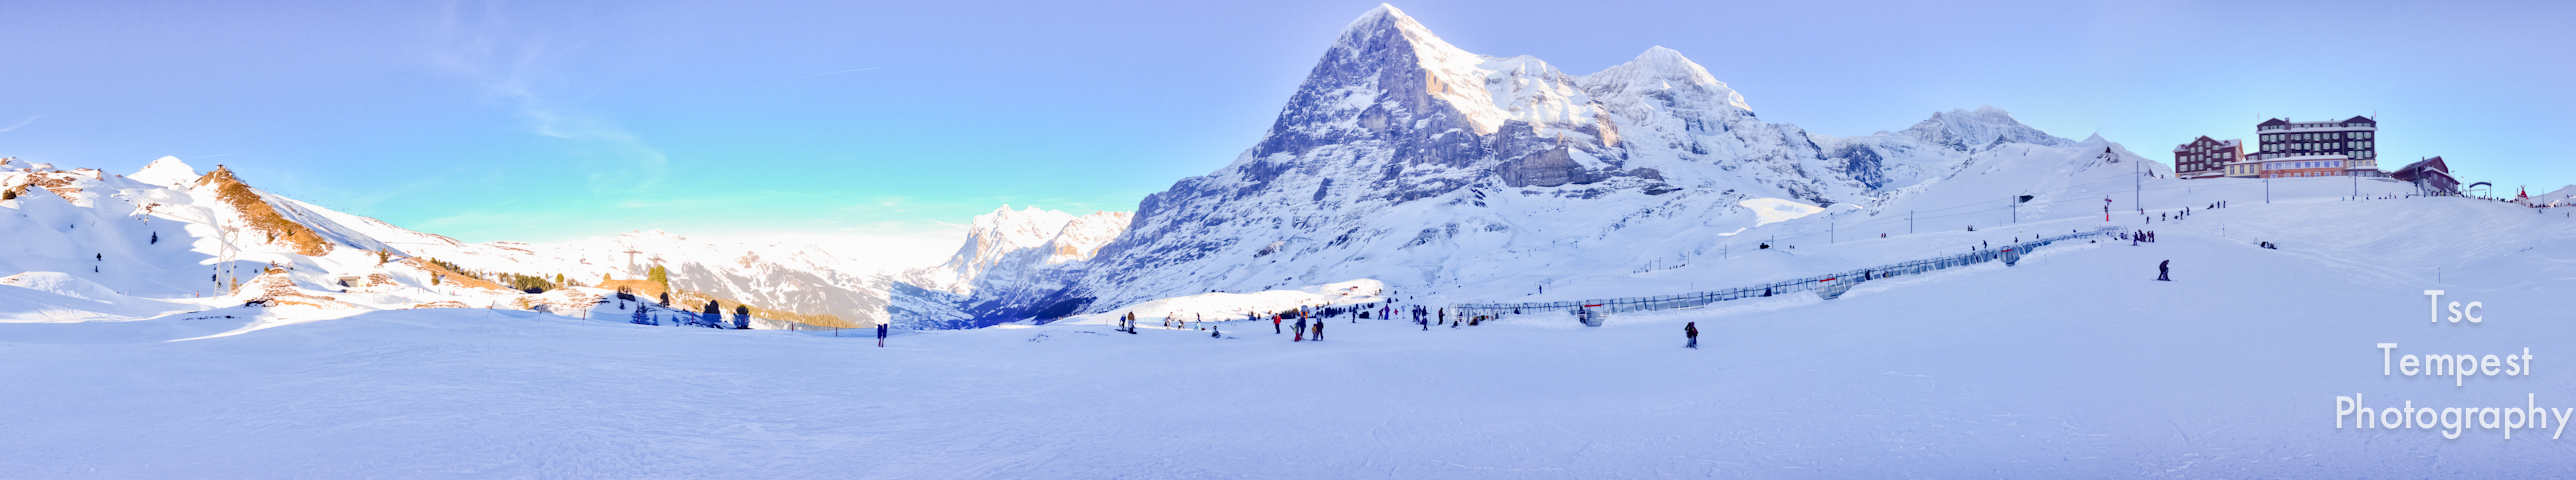 Beginners Ski Slopes beneath the gaze of the North Wall of the Eiger, Switzerland